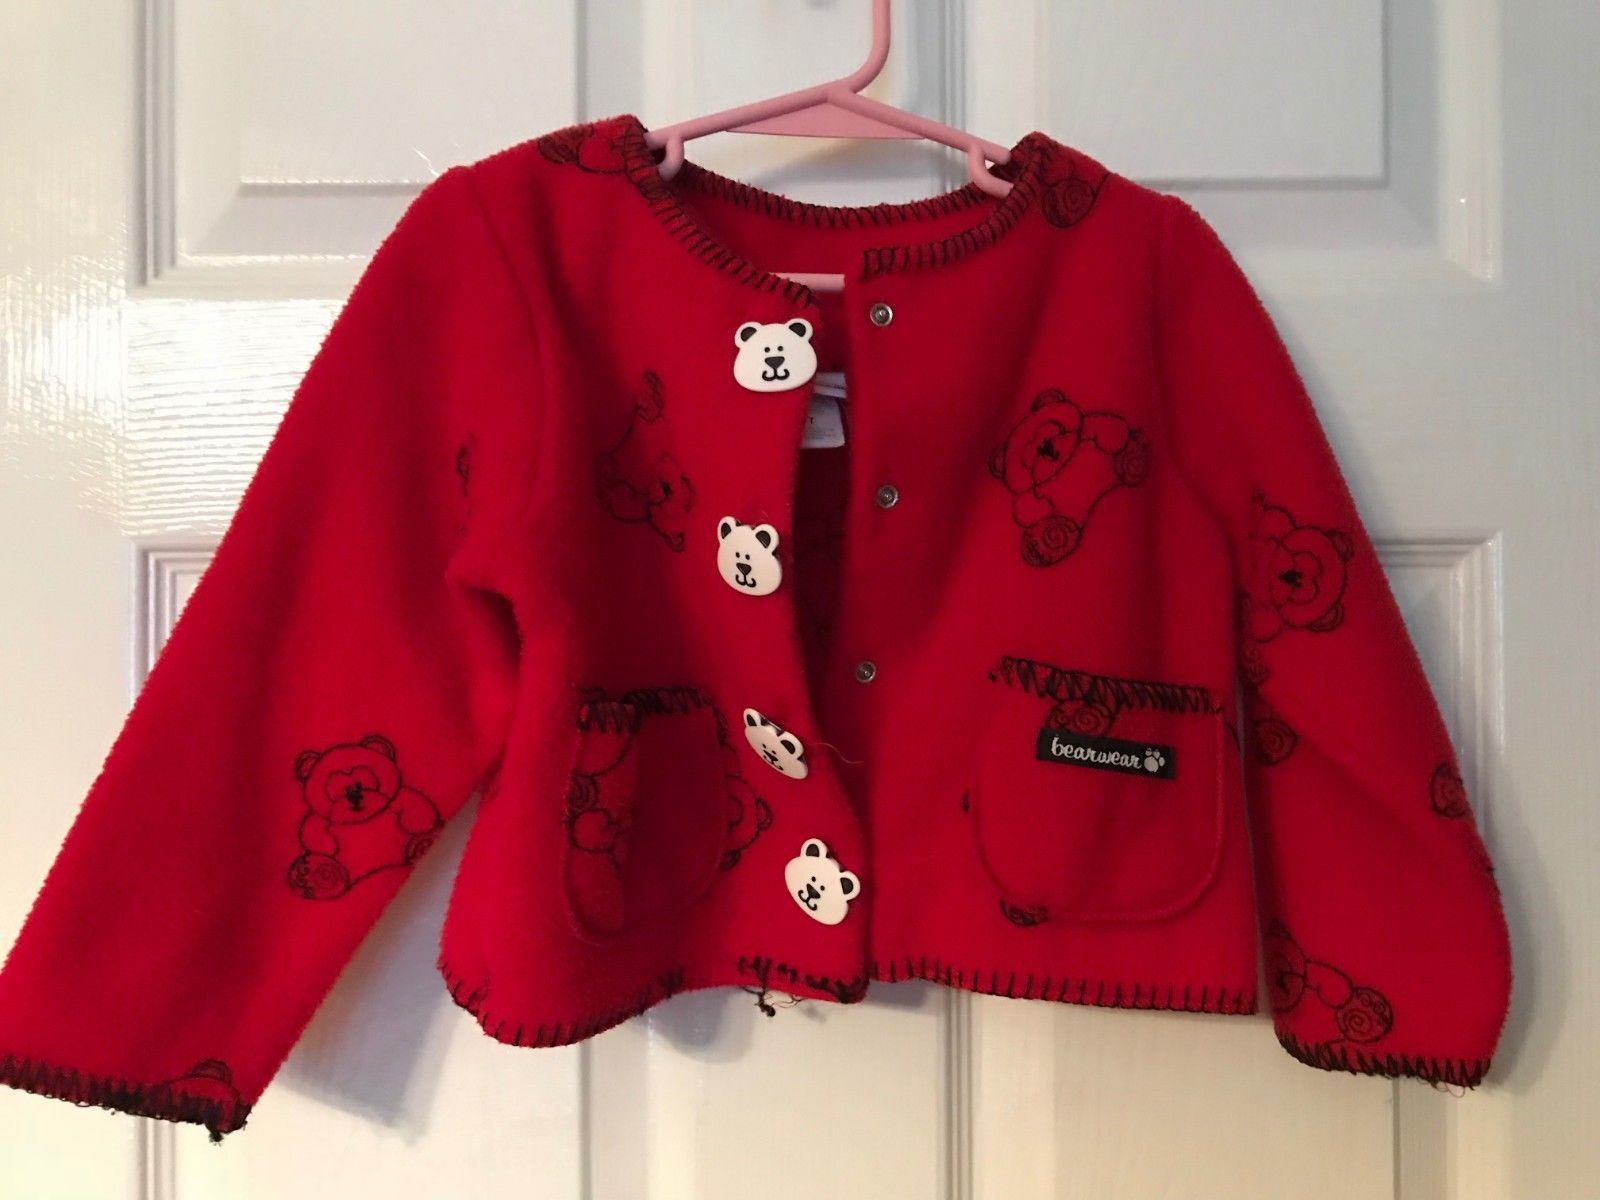 d1d70642e Buster Brown Girls Baby Bear Wear Size 3 tod and 50 similar items